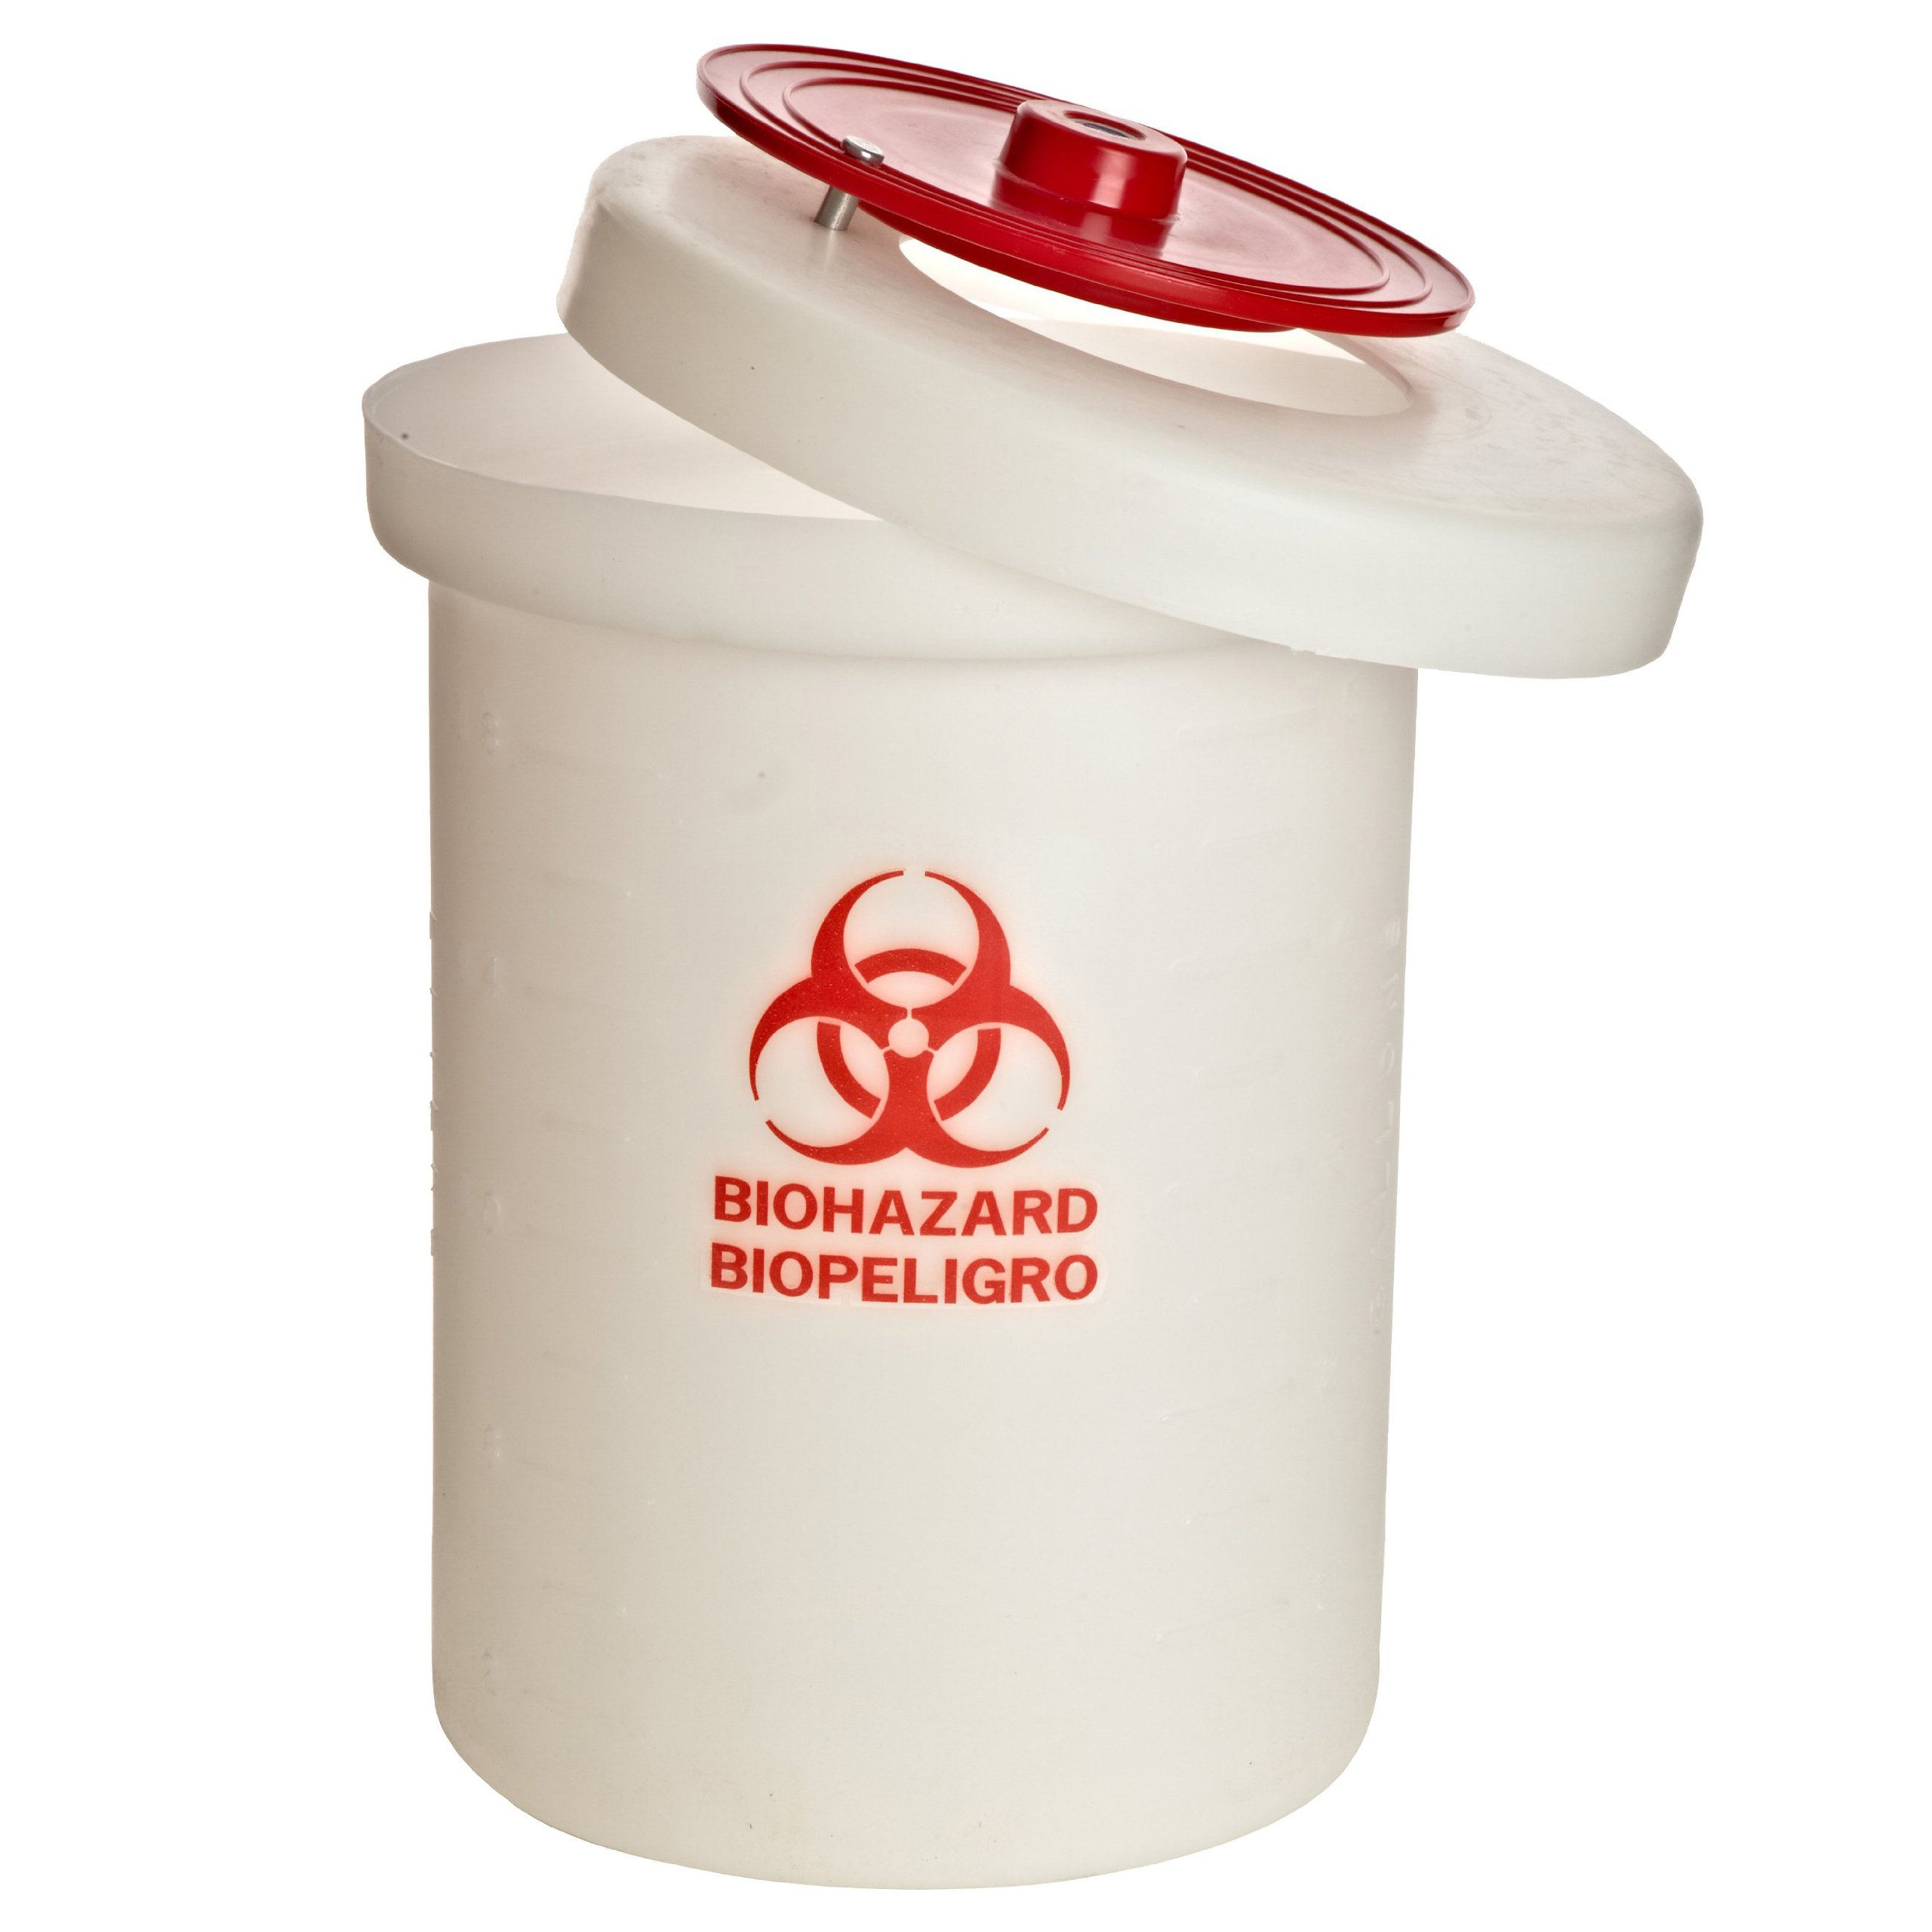 Nalgene 6920-0060 Biohazard Waste Container With Cover, Polypropylene, Large, 23 Liter